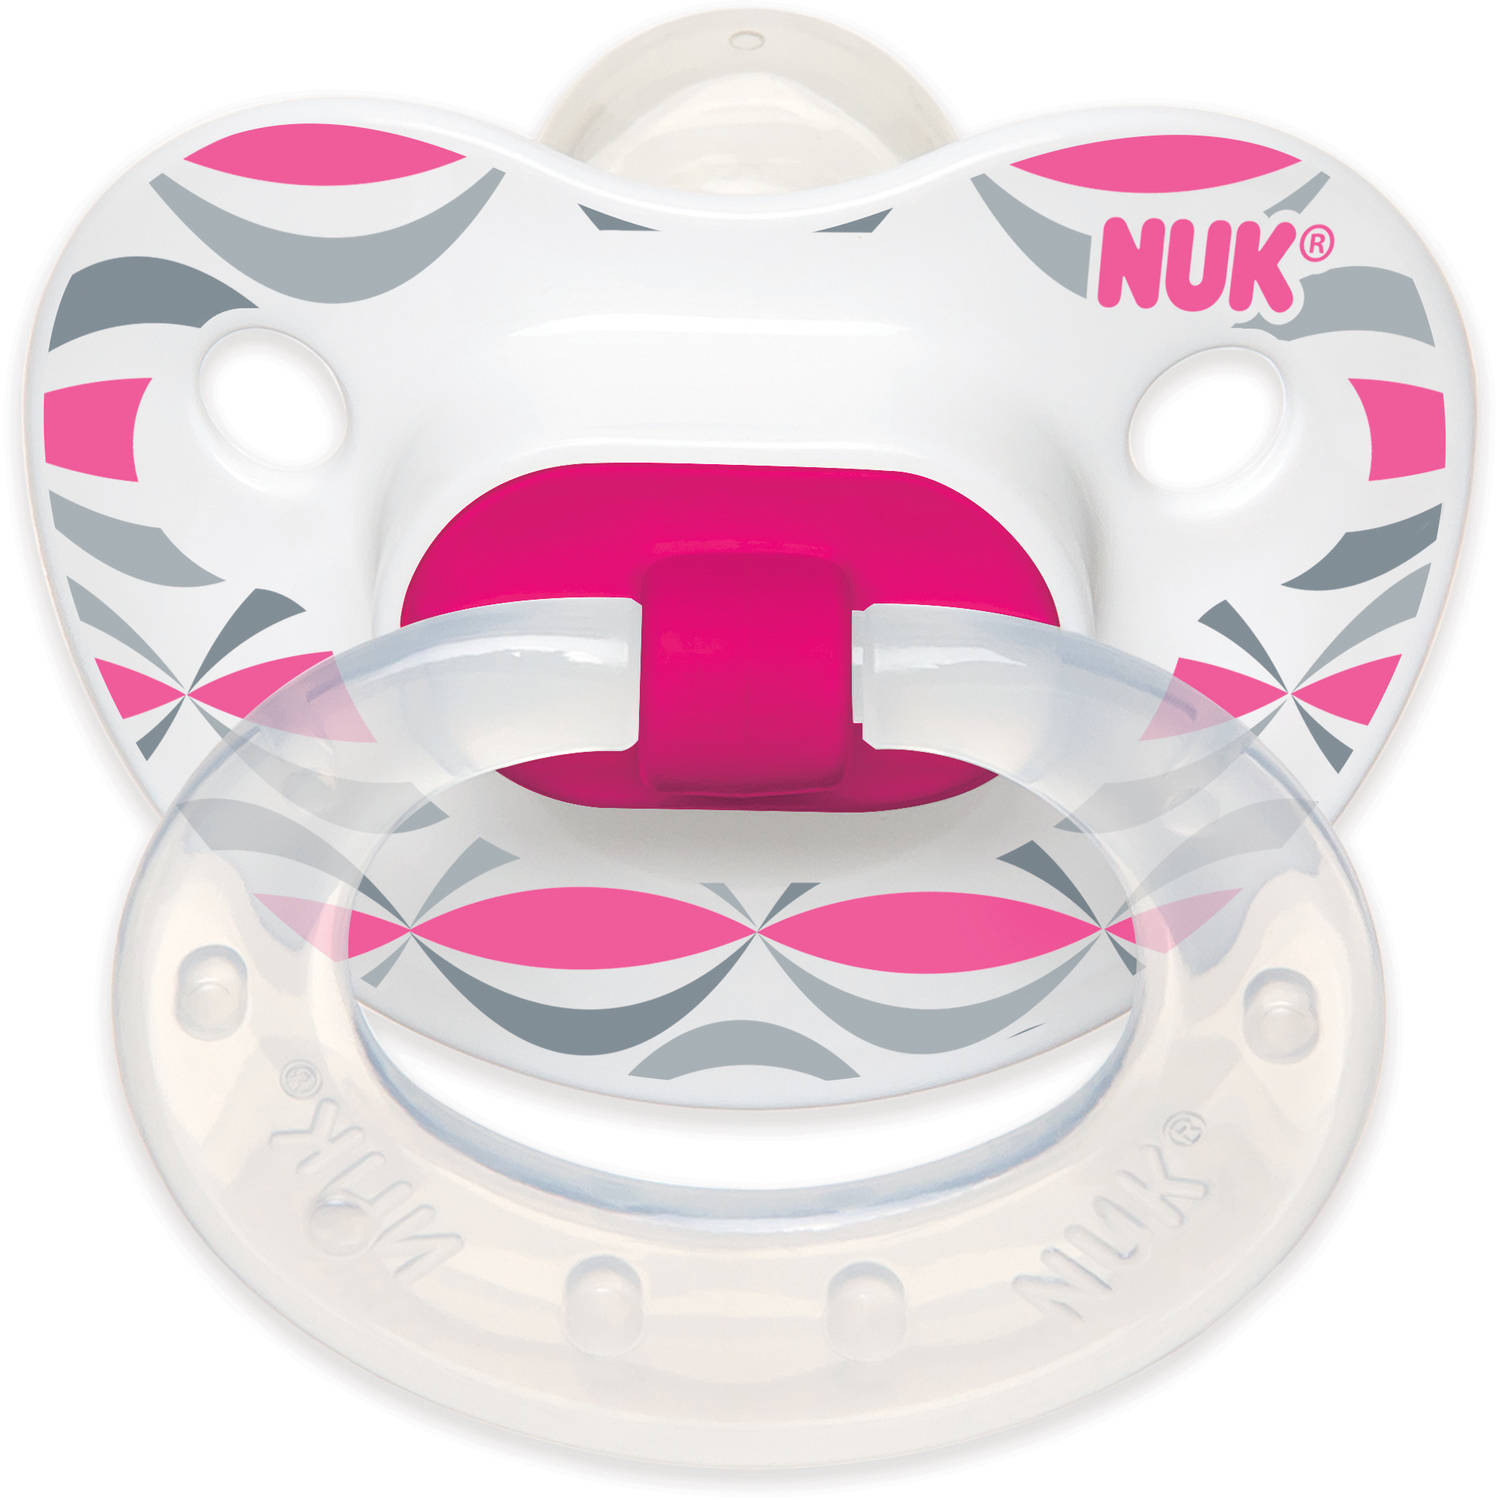 The NUK Silicone Orthodontic Pacifier, Choose Your Color